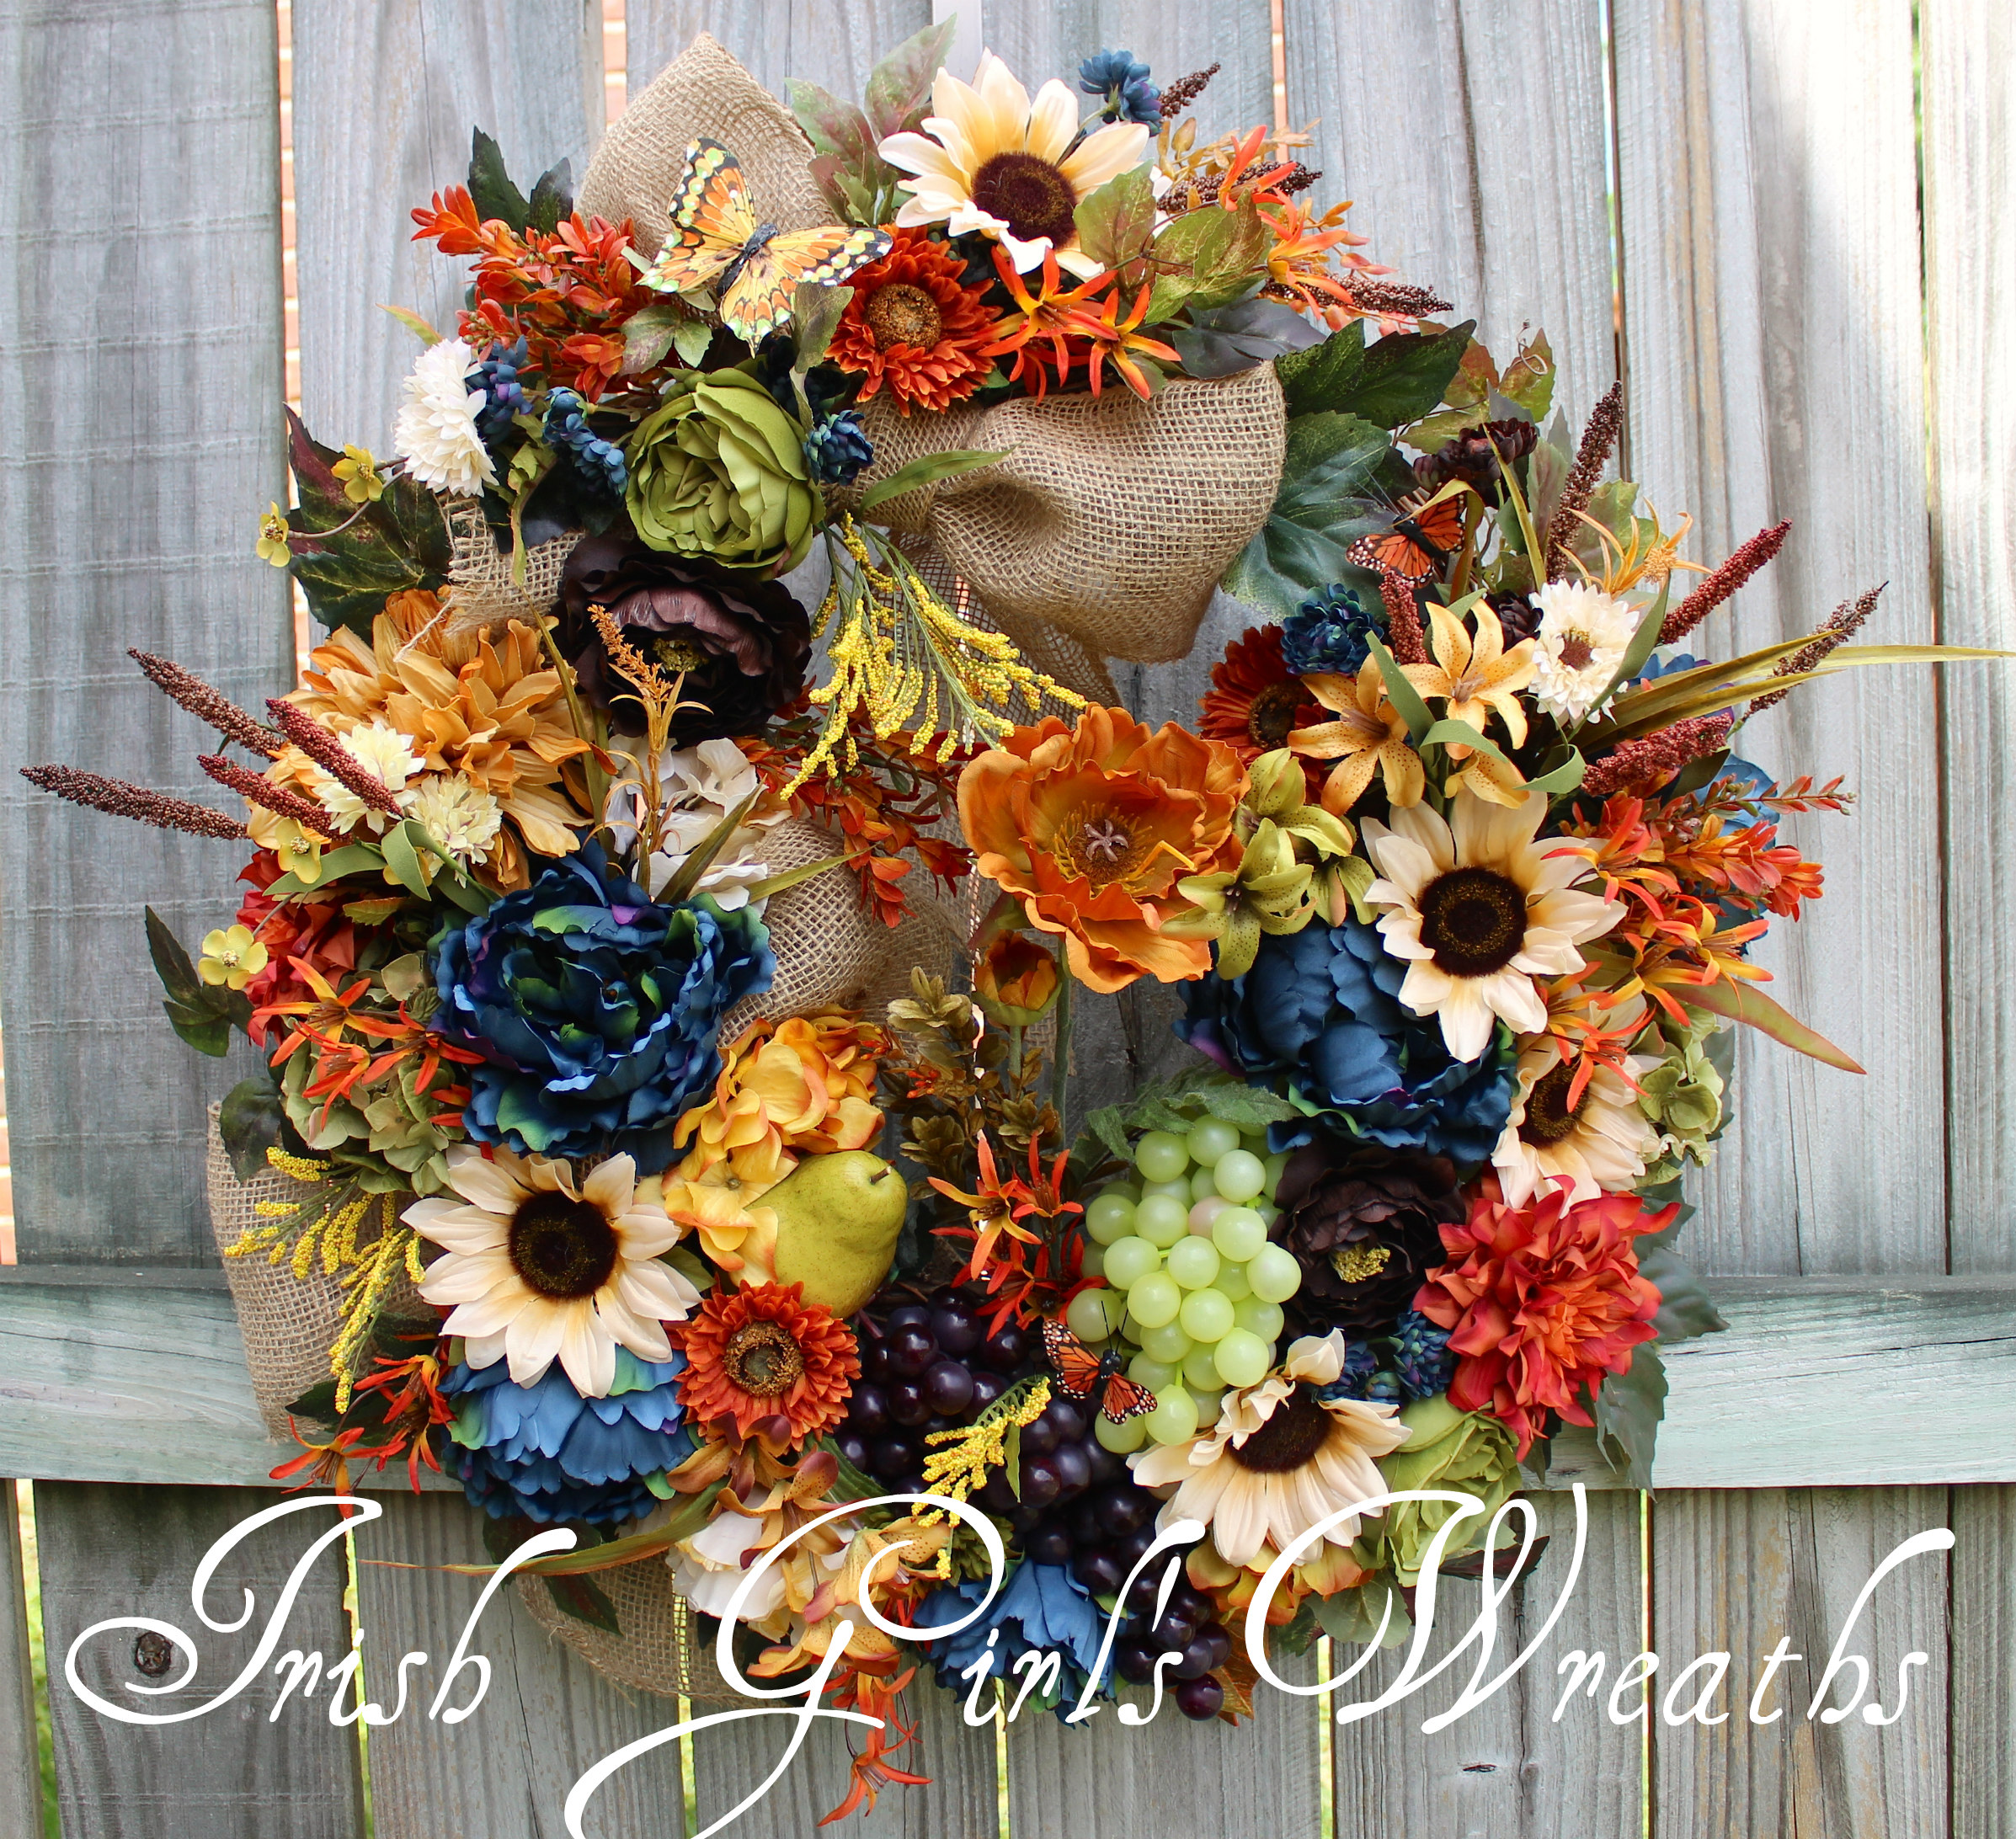 Deluxe Tuscan Splendor in Blue, Brown, Rust and Cream Wreath, Tuscan-French Country Wreath